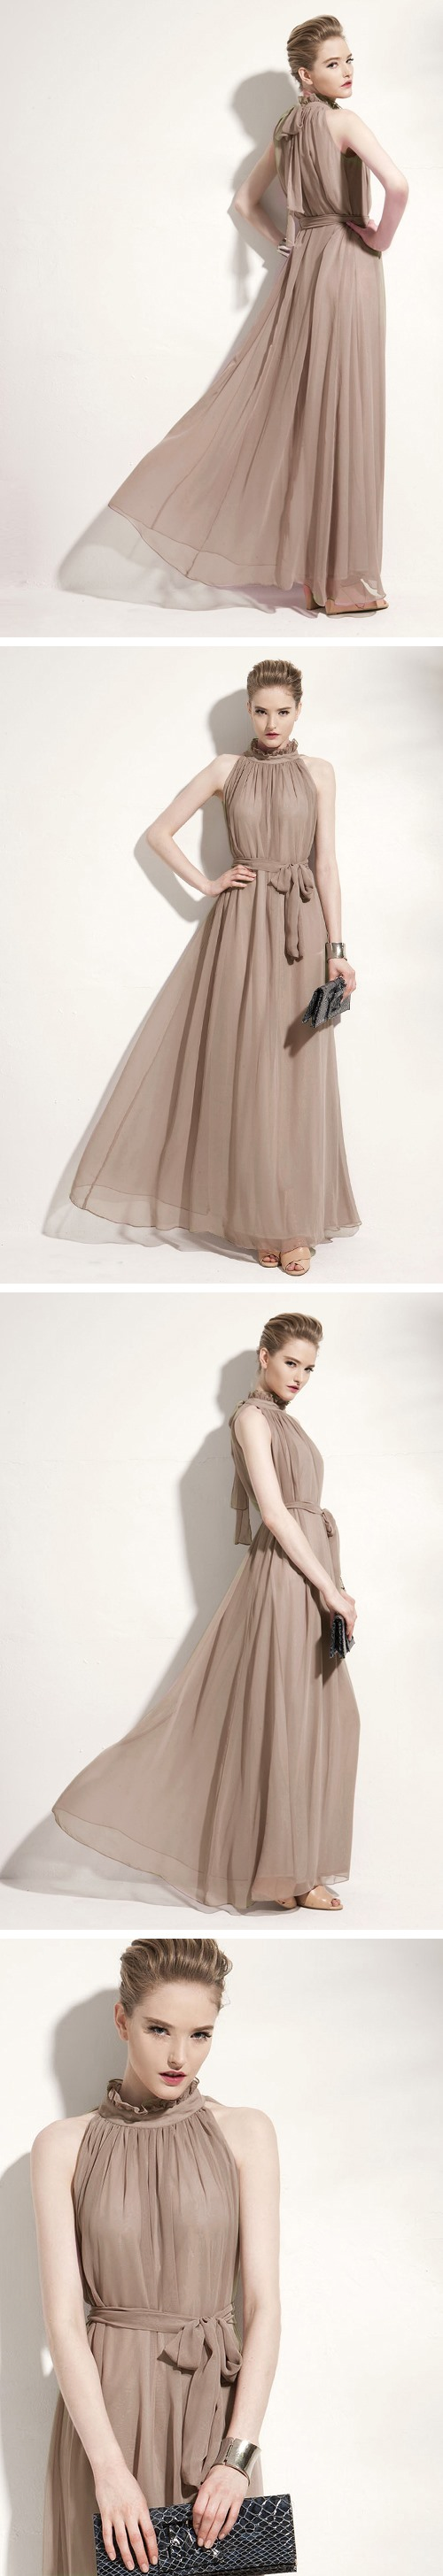 Long dress usd favourite online fashion store